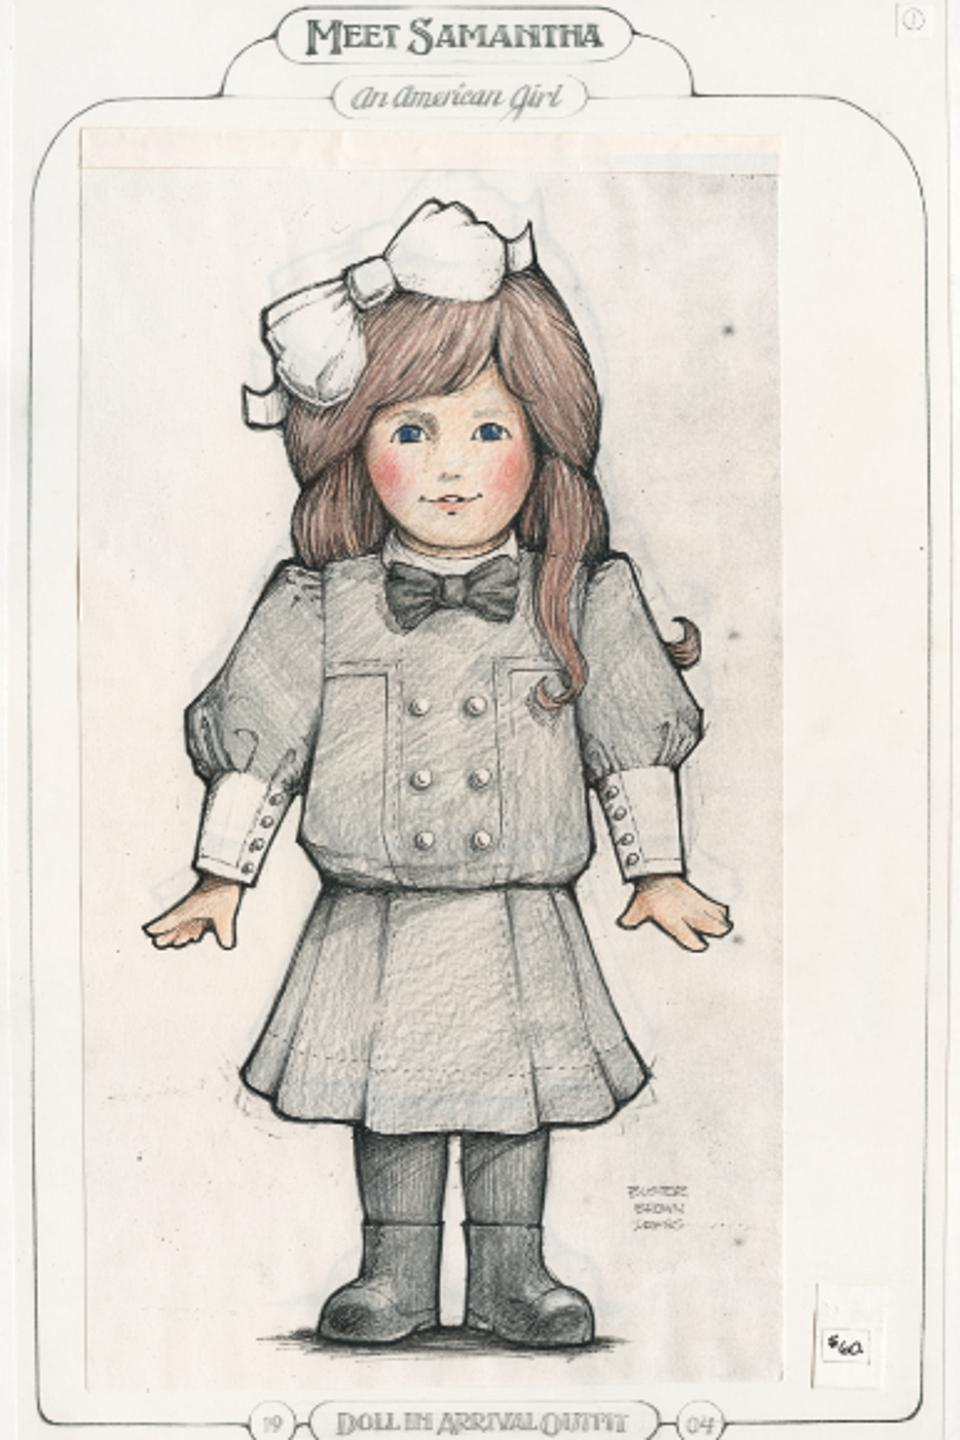 A sketch of a doll from the American Girl series